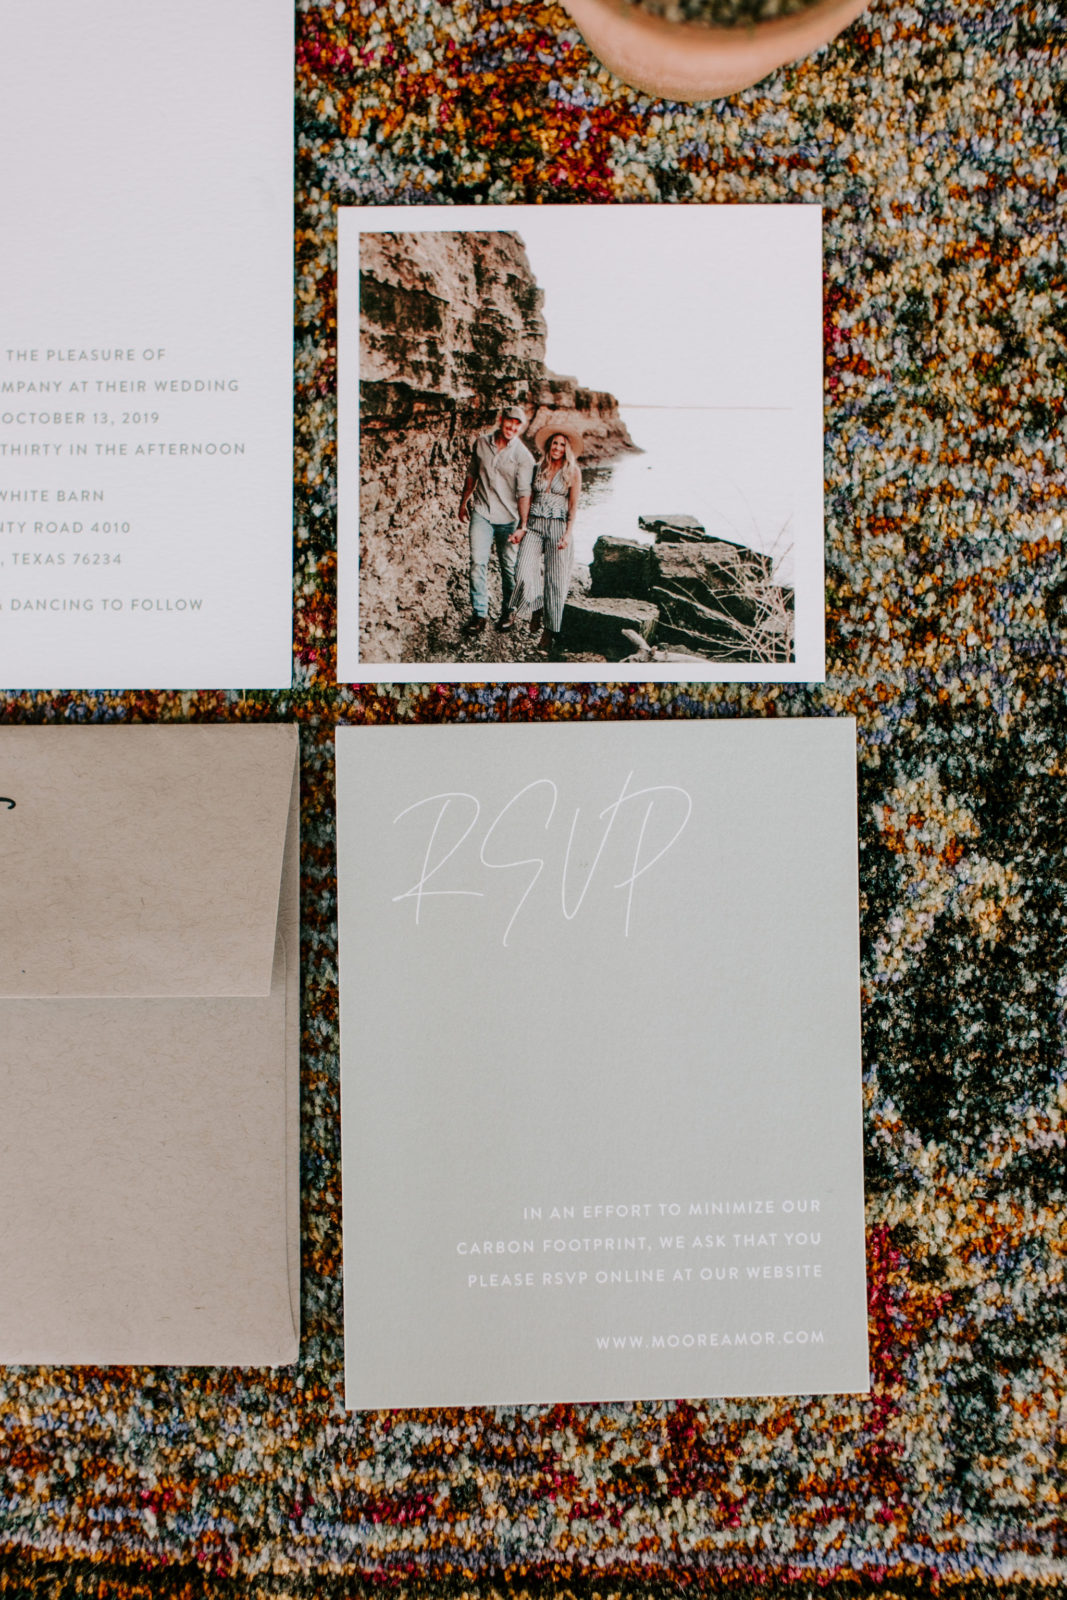 Rustic Wedding Stationery: Bohemian Big White Barn Wedding